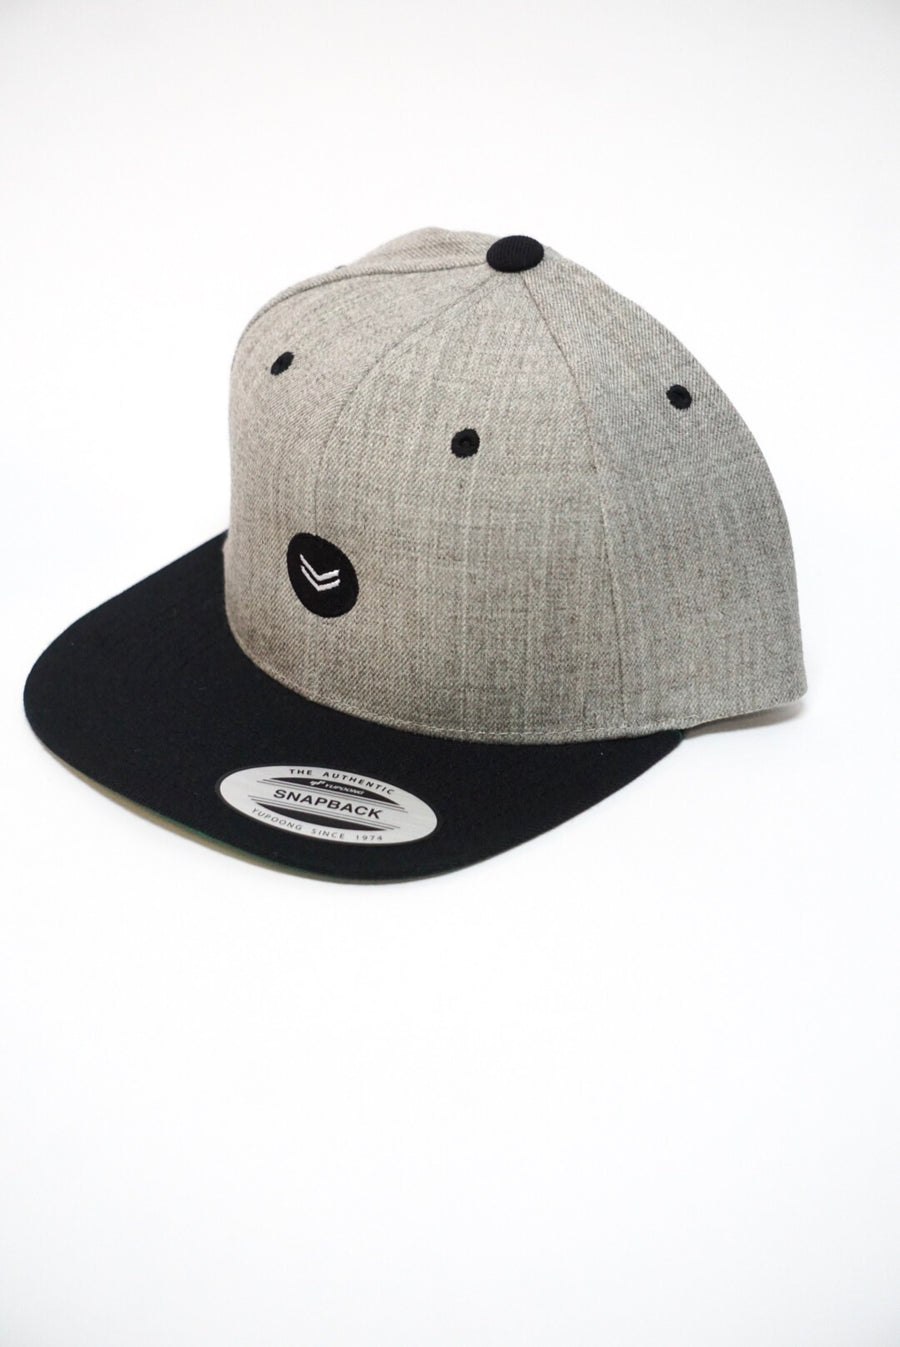 Heather Gray/ Black Snapback